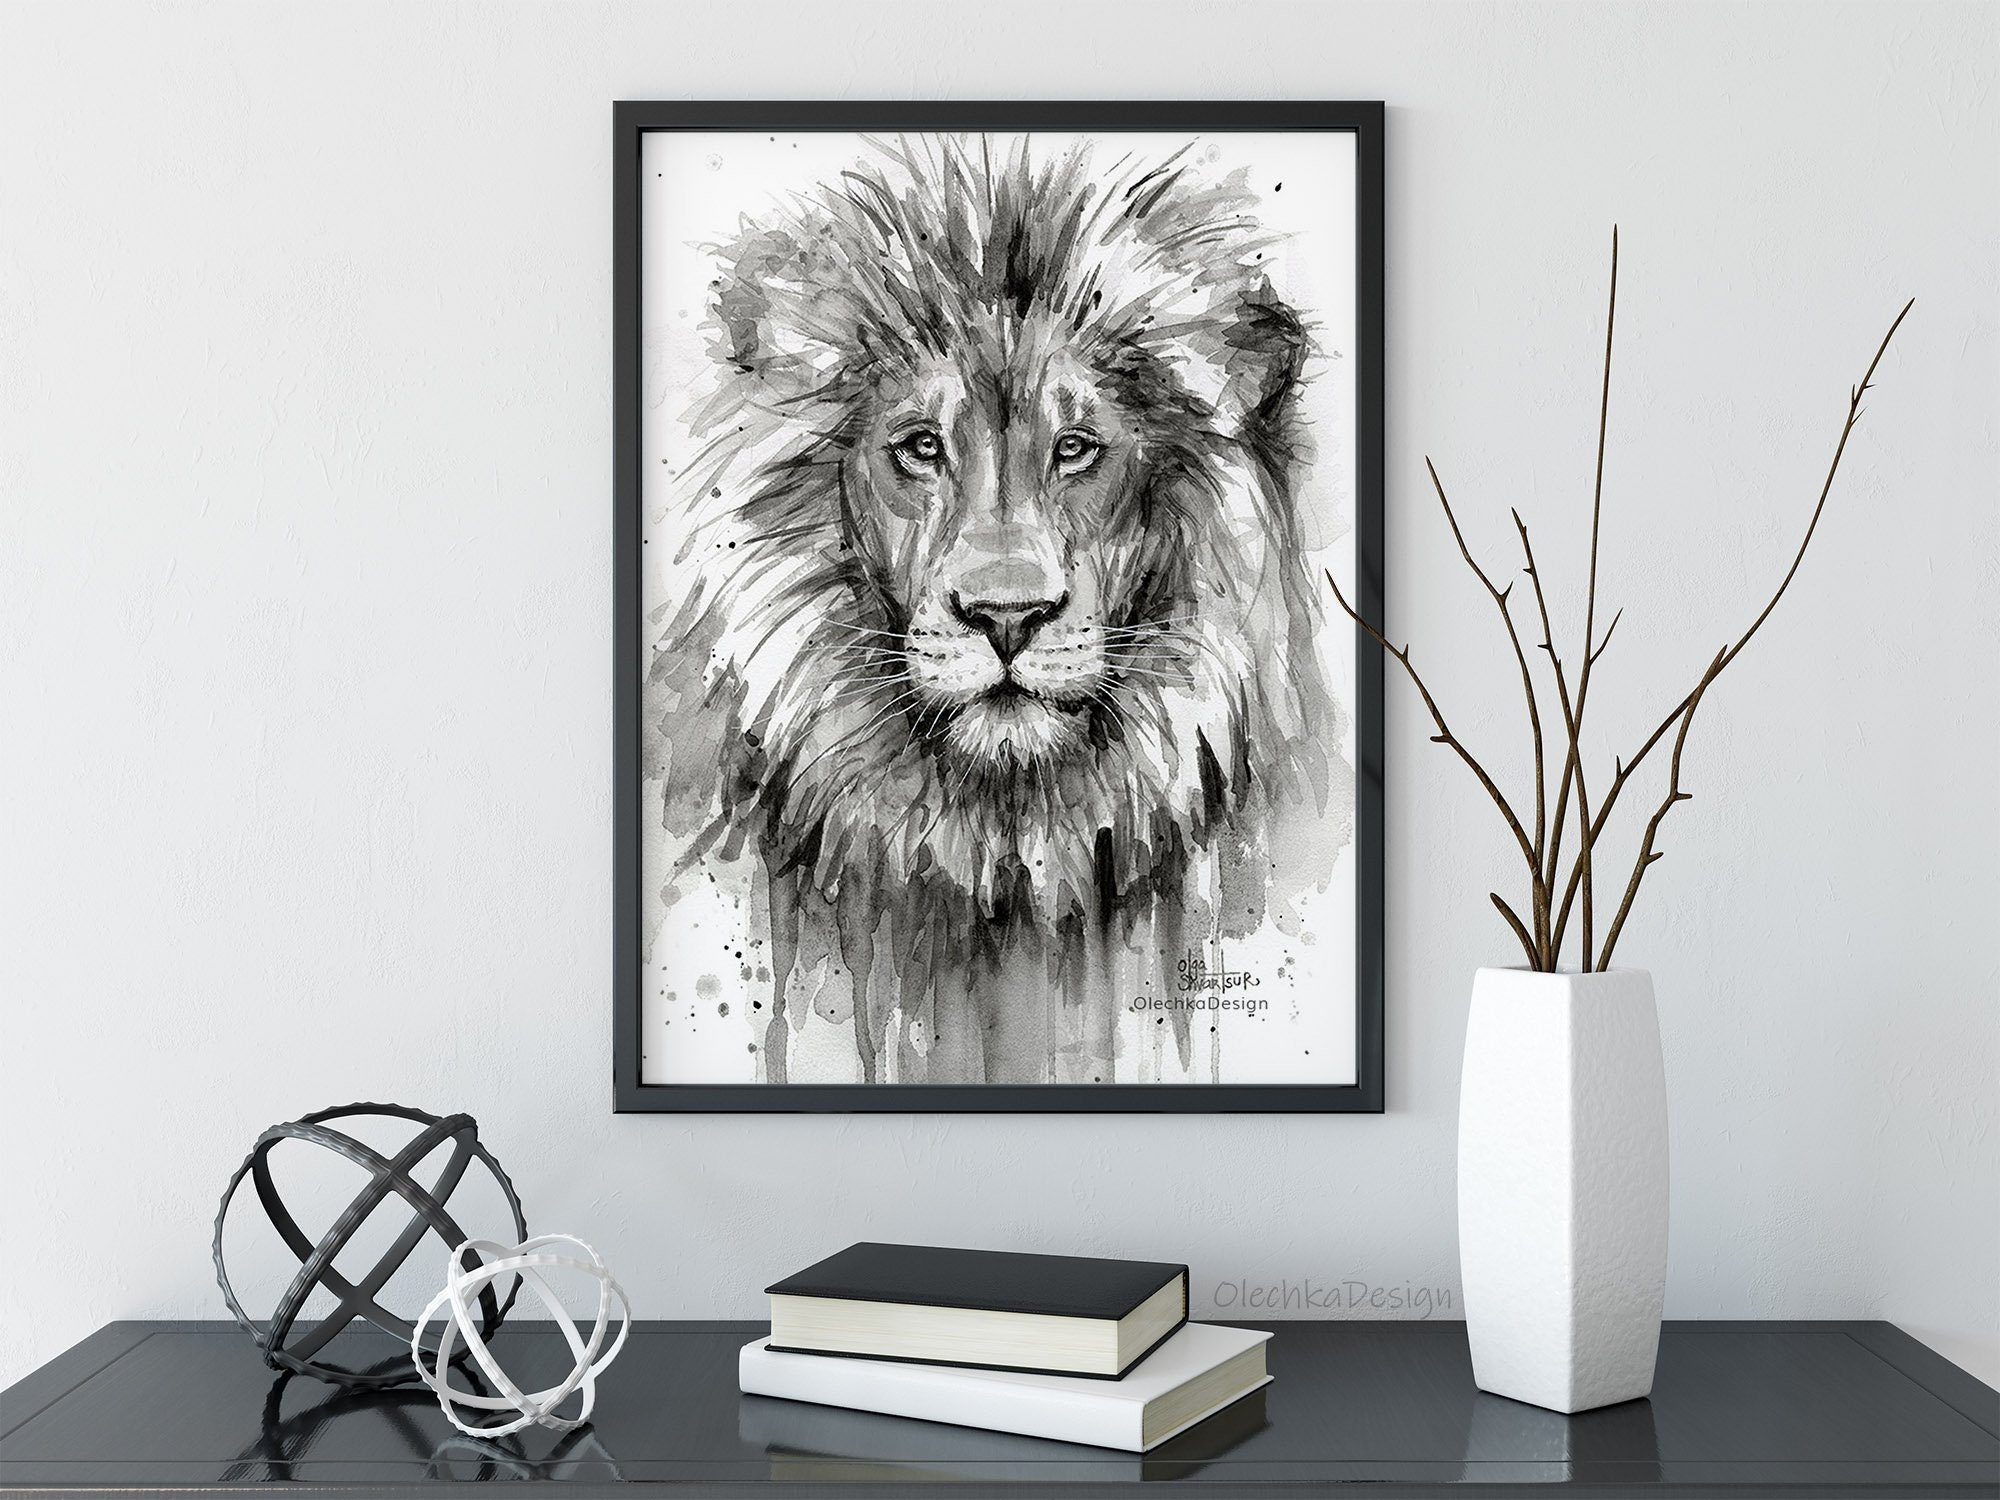 Lion art lion art print lion wall art jungle animal safari animal art nursery wall art lion painting lion watercolor giclee print